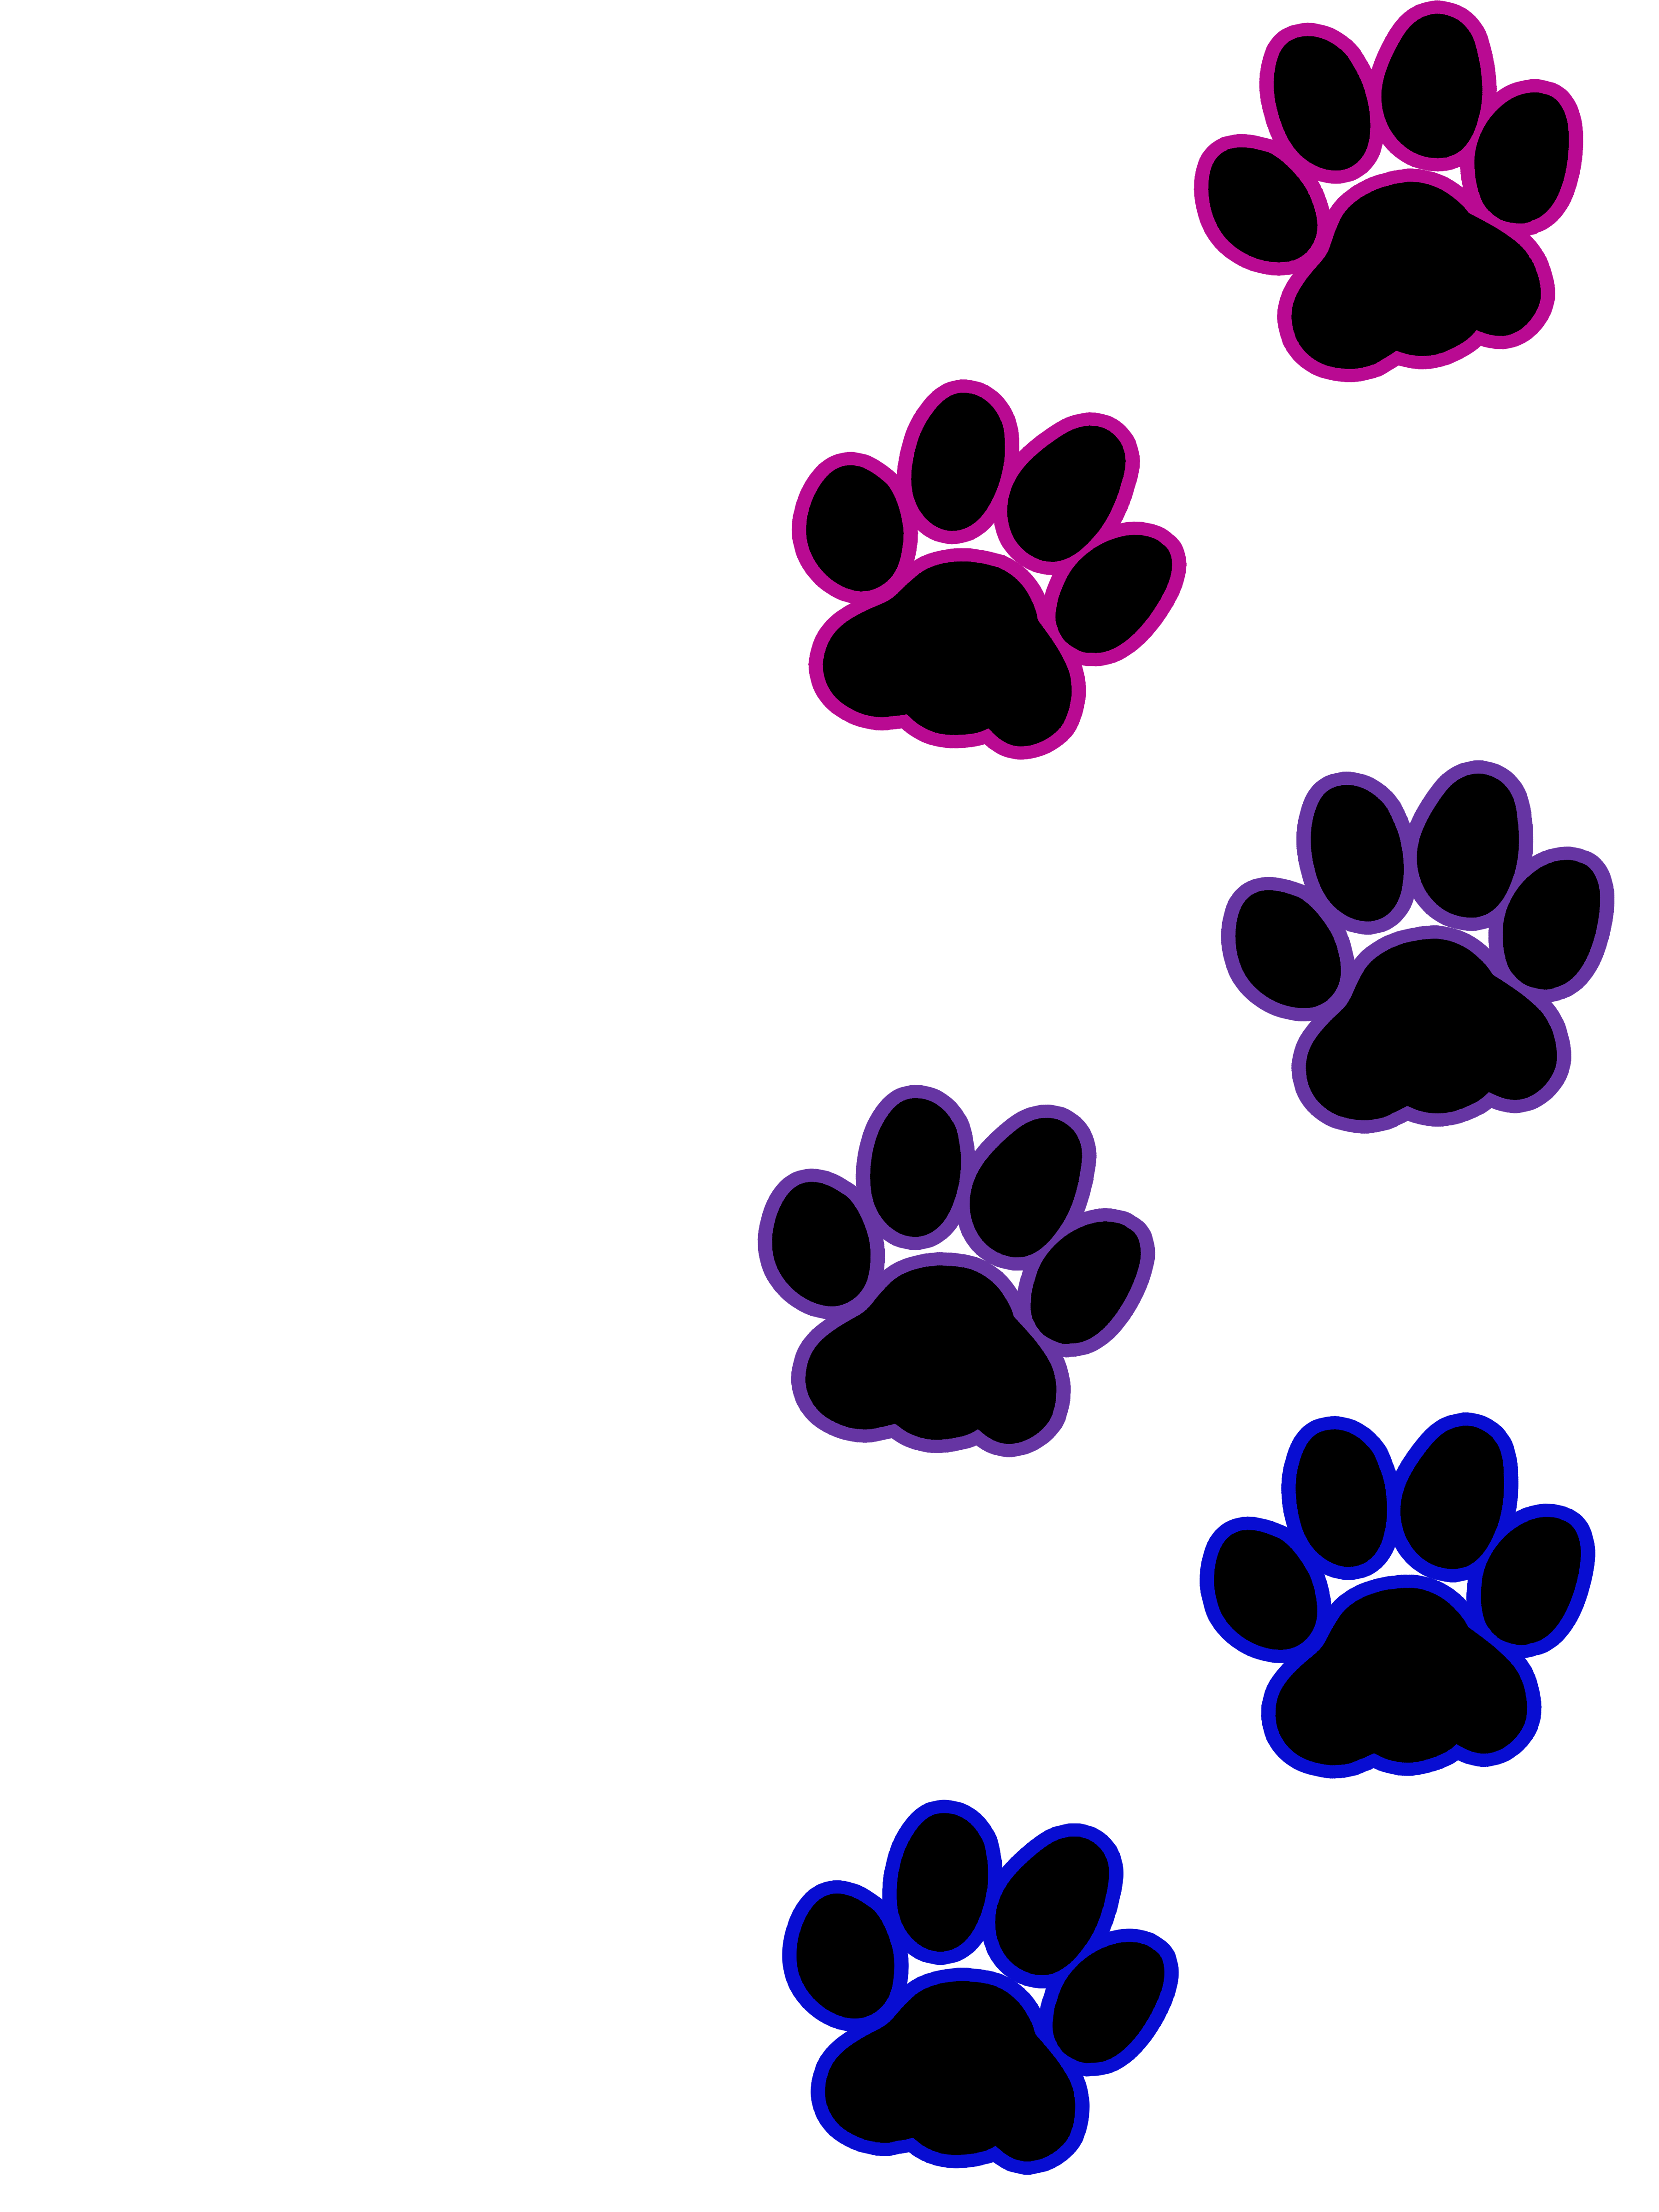 Paw print bisexual artworktee. Pawprint clipart cat